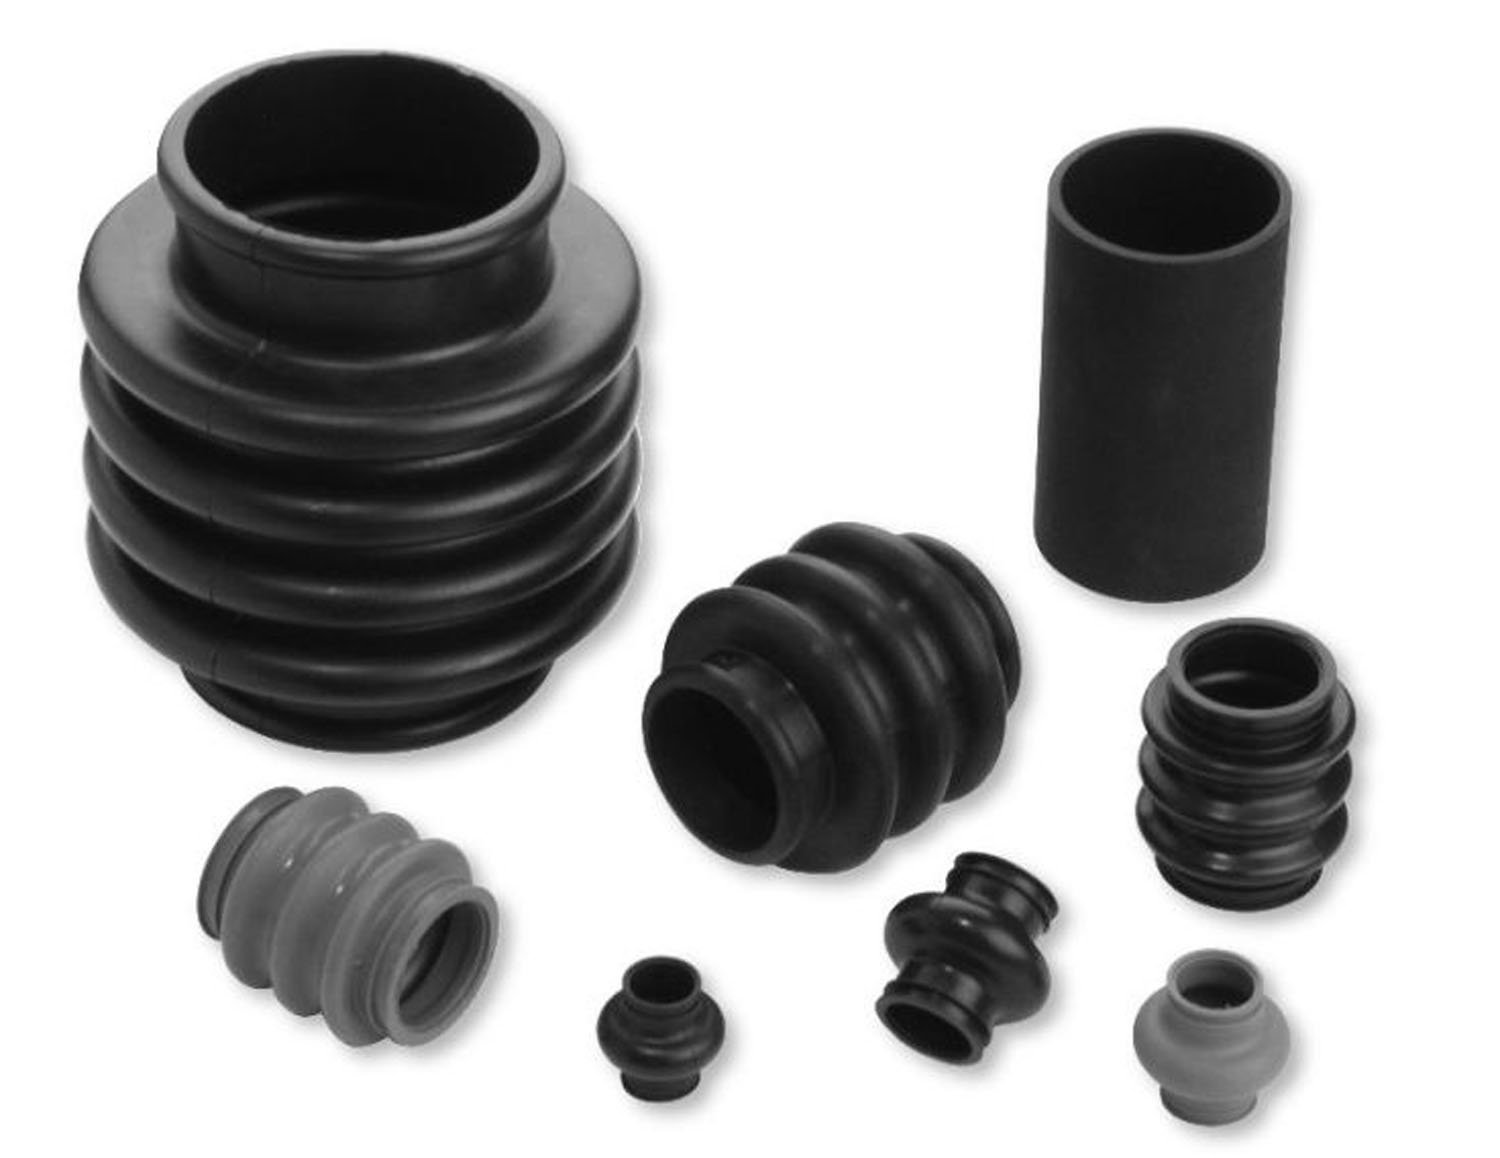 """New Belden UJ-1000 Boot Universal Joint Boot Covers, Nitrile, 1"""" Bore, 1-1/2"""" OD, 1-1/2"""" Overall Length for cheap twQGjFvy"""